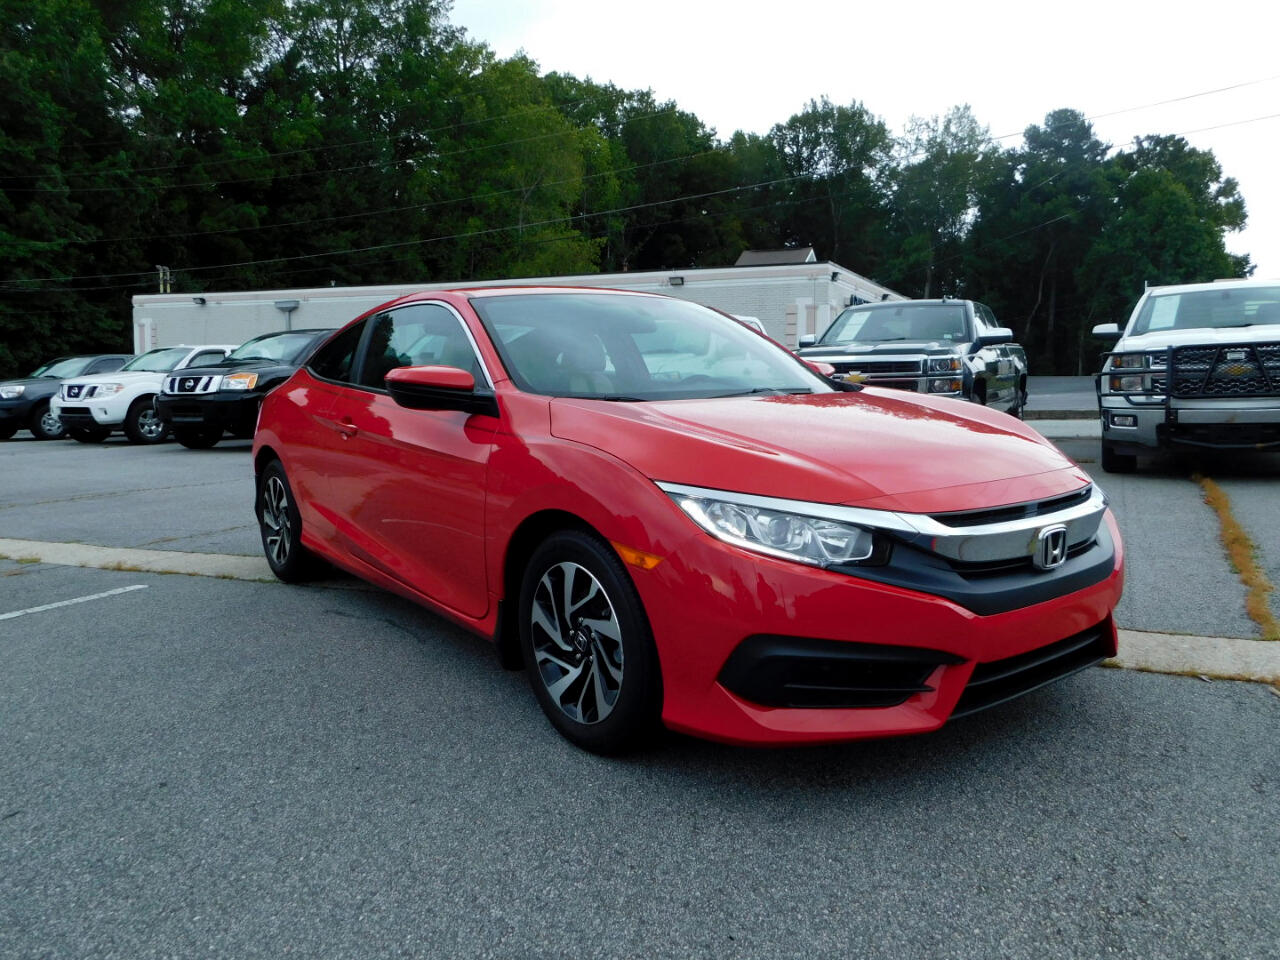 2016 Honda Civic LX-P Coupe CVT